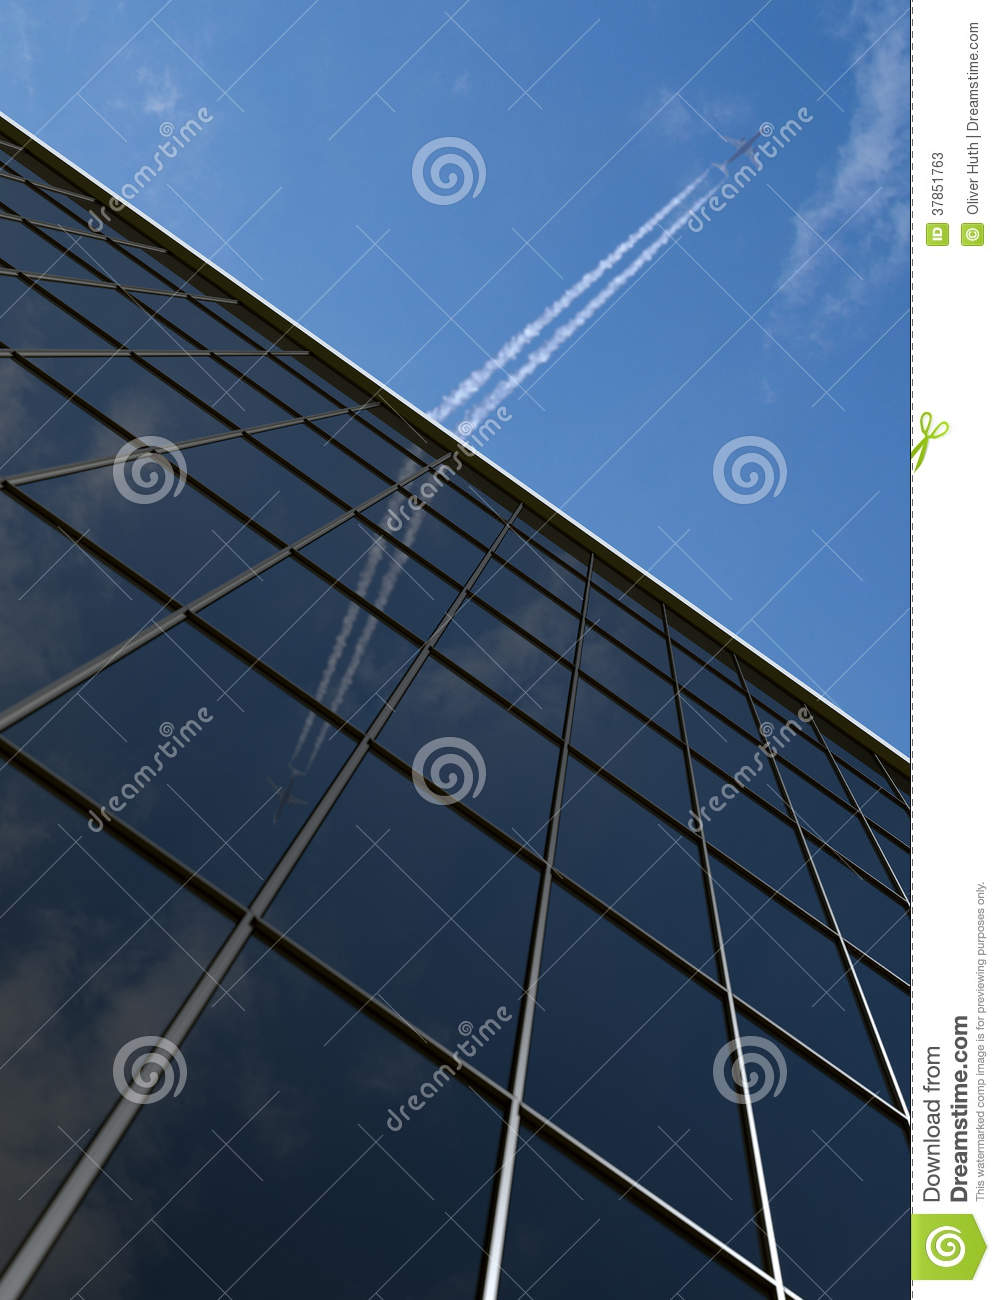 Building with plane